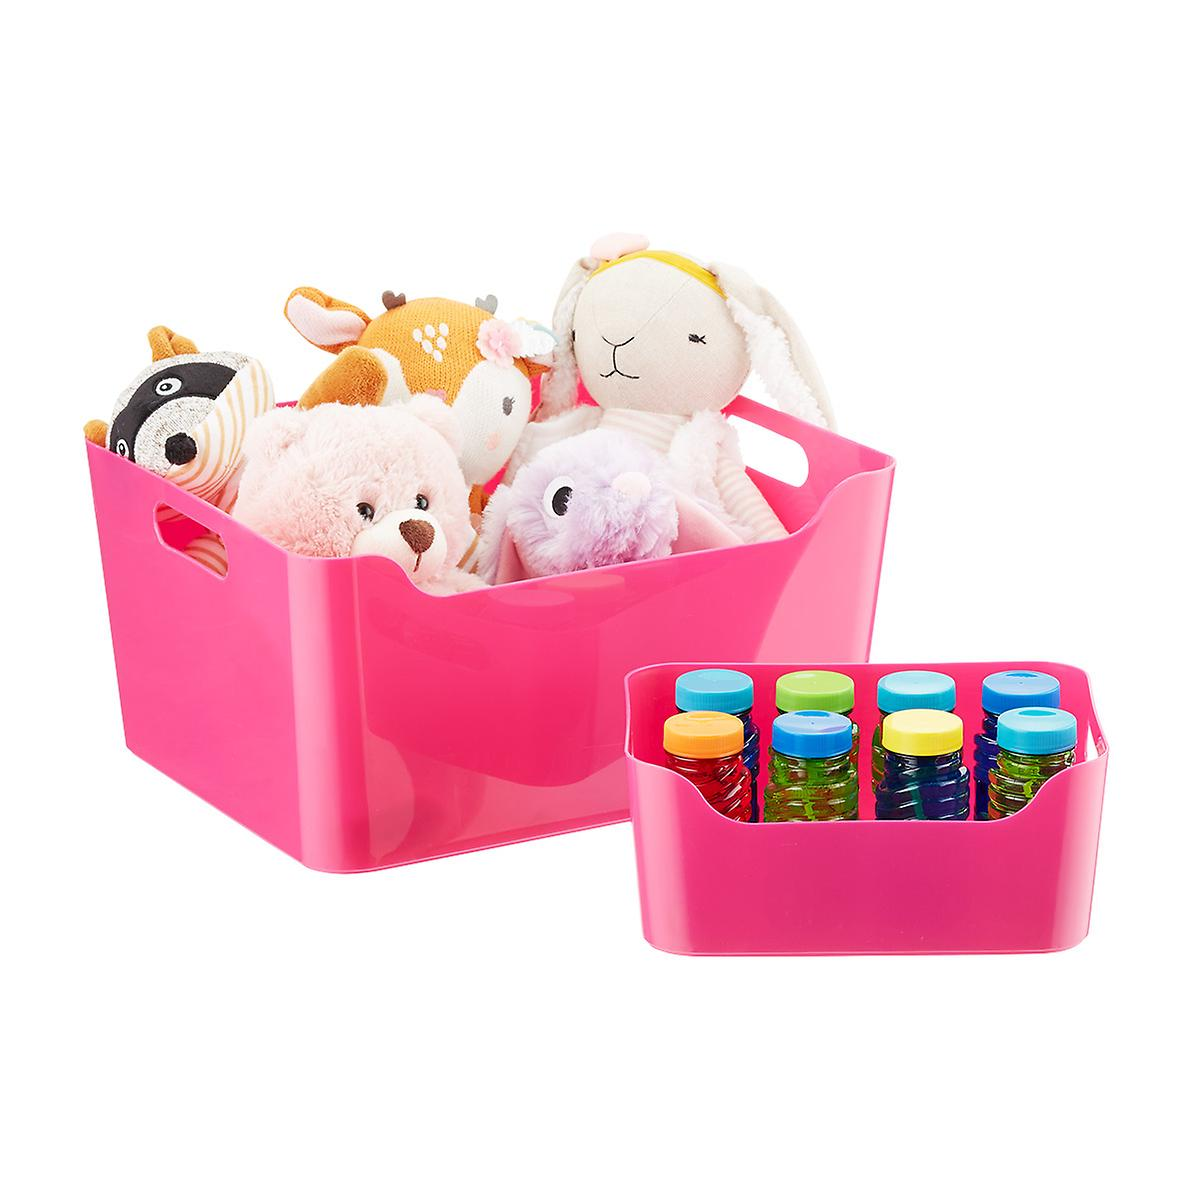 Fuchsia Plastic Storage Bins with Handles